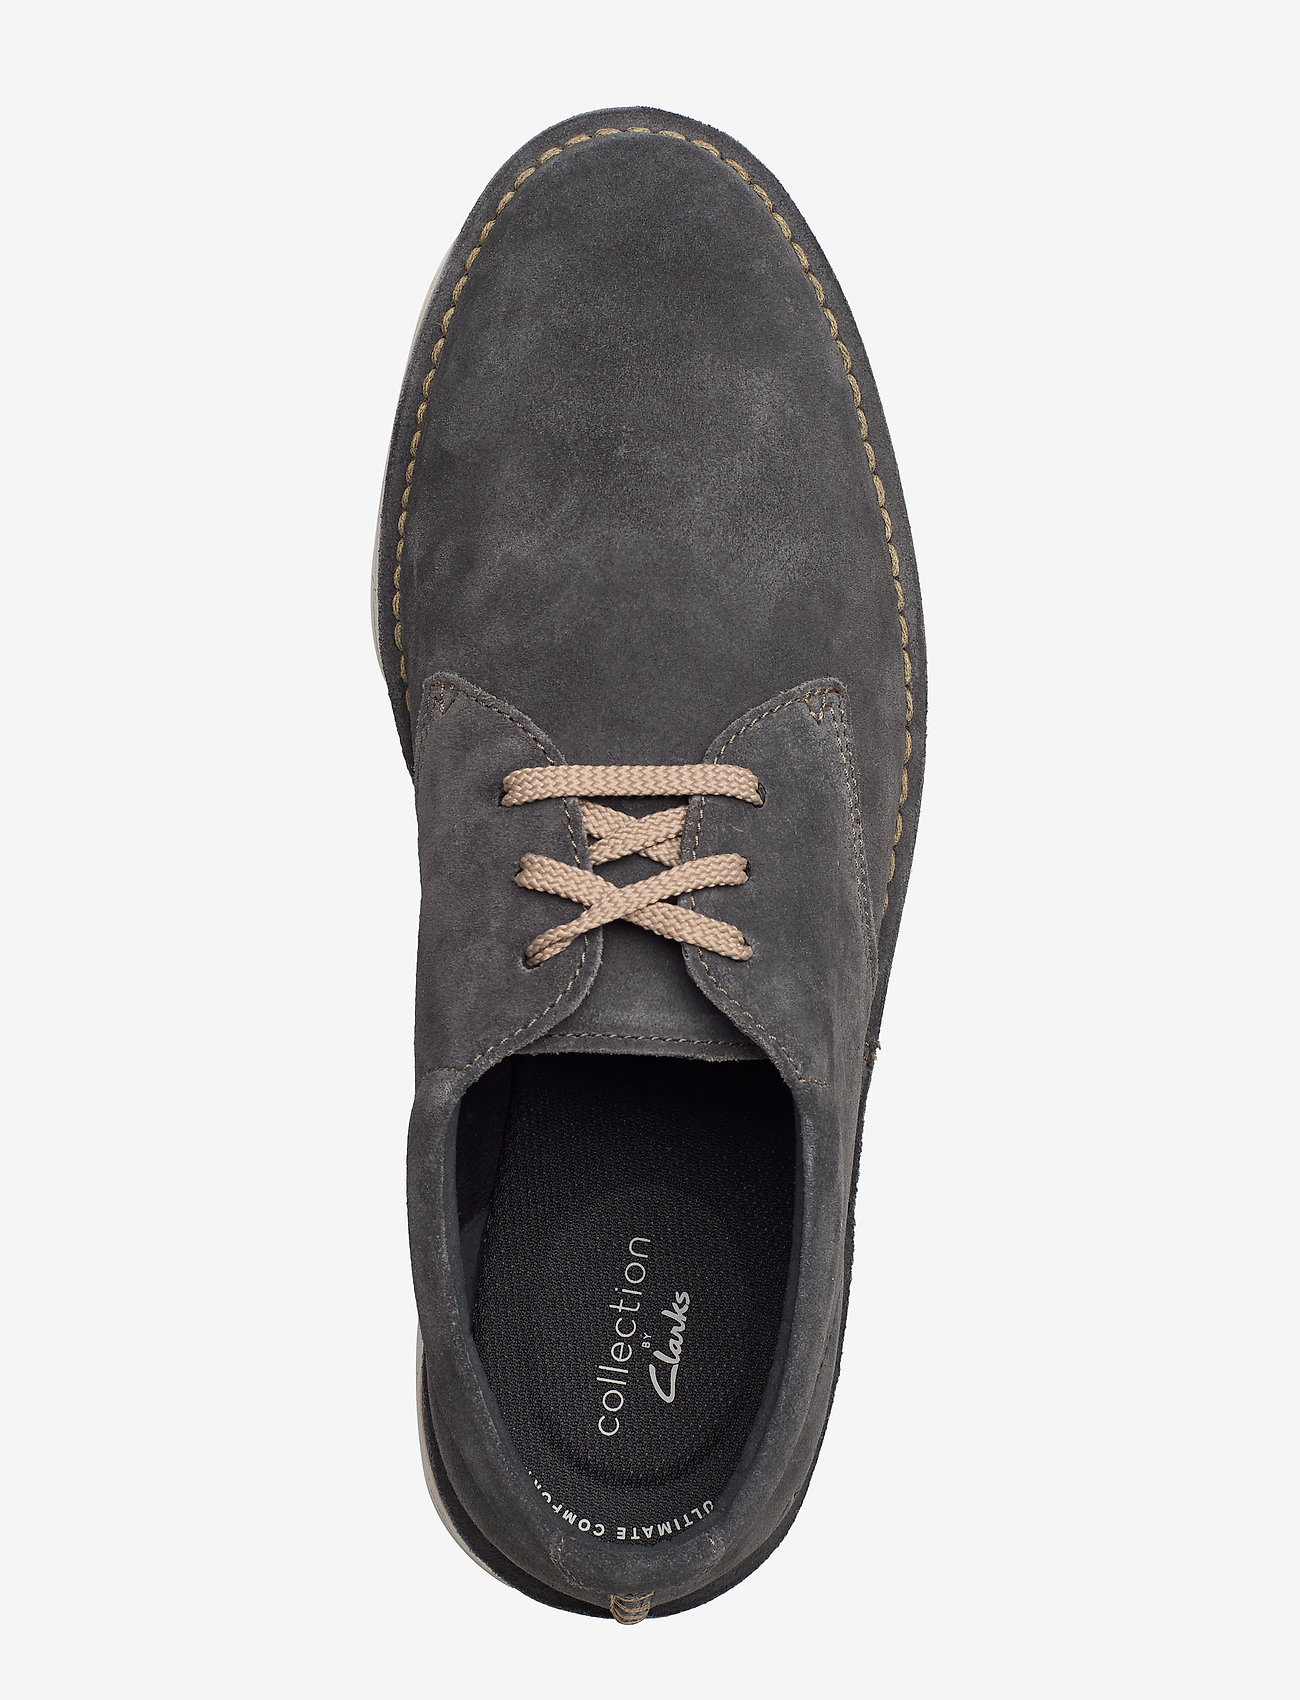 Forge Vibe (Storm Suede) - Clarks